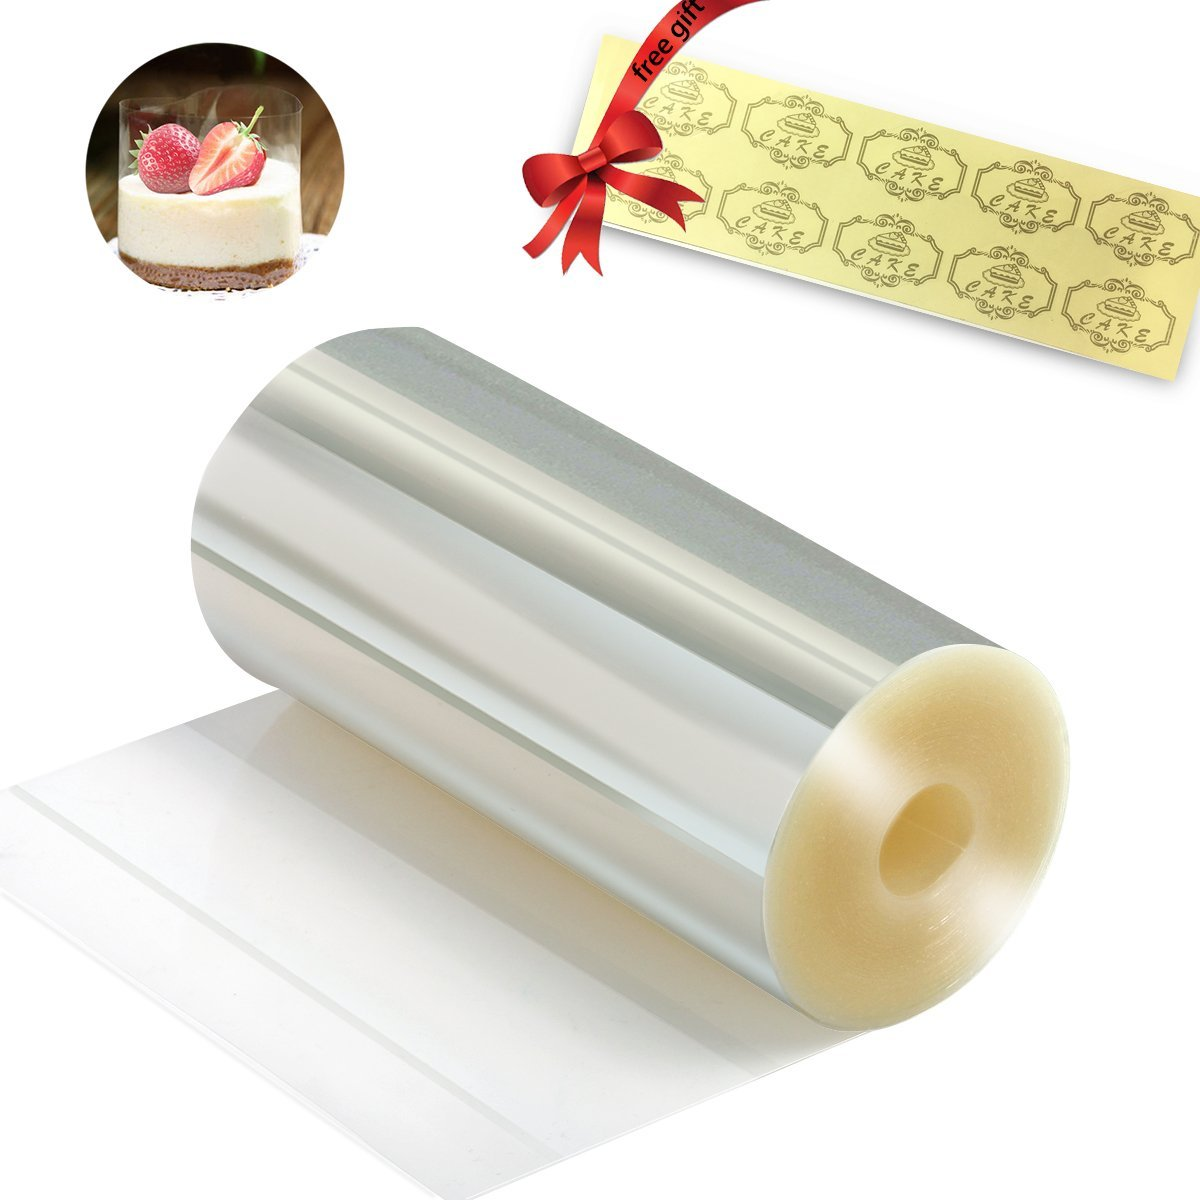 Cake Collars 3.9 x 394inch - Butefo Clear Cake Strips, Transparent Cake Rolls, Mousse Cake Collar for Chocolate Mousse Baking, Cake Decorating